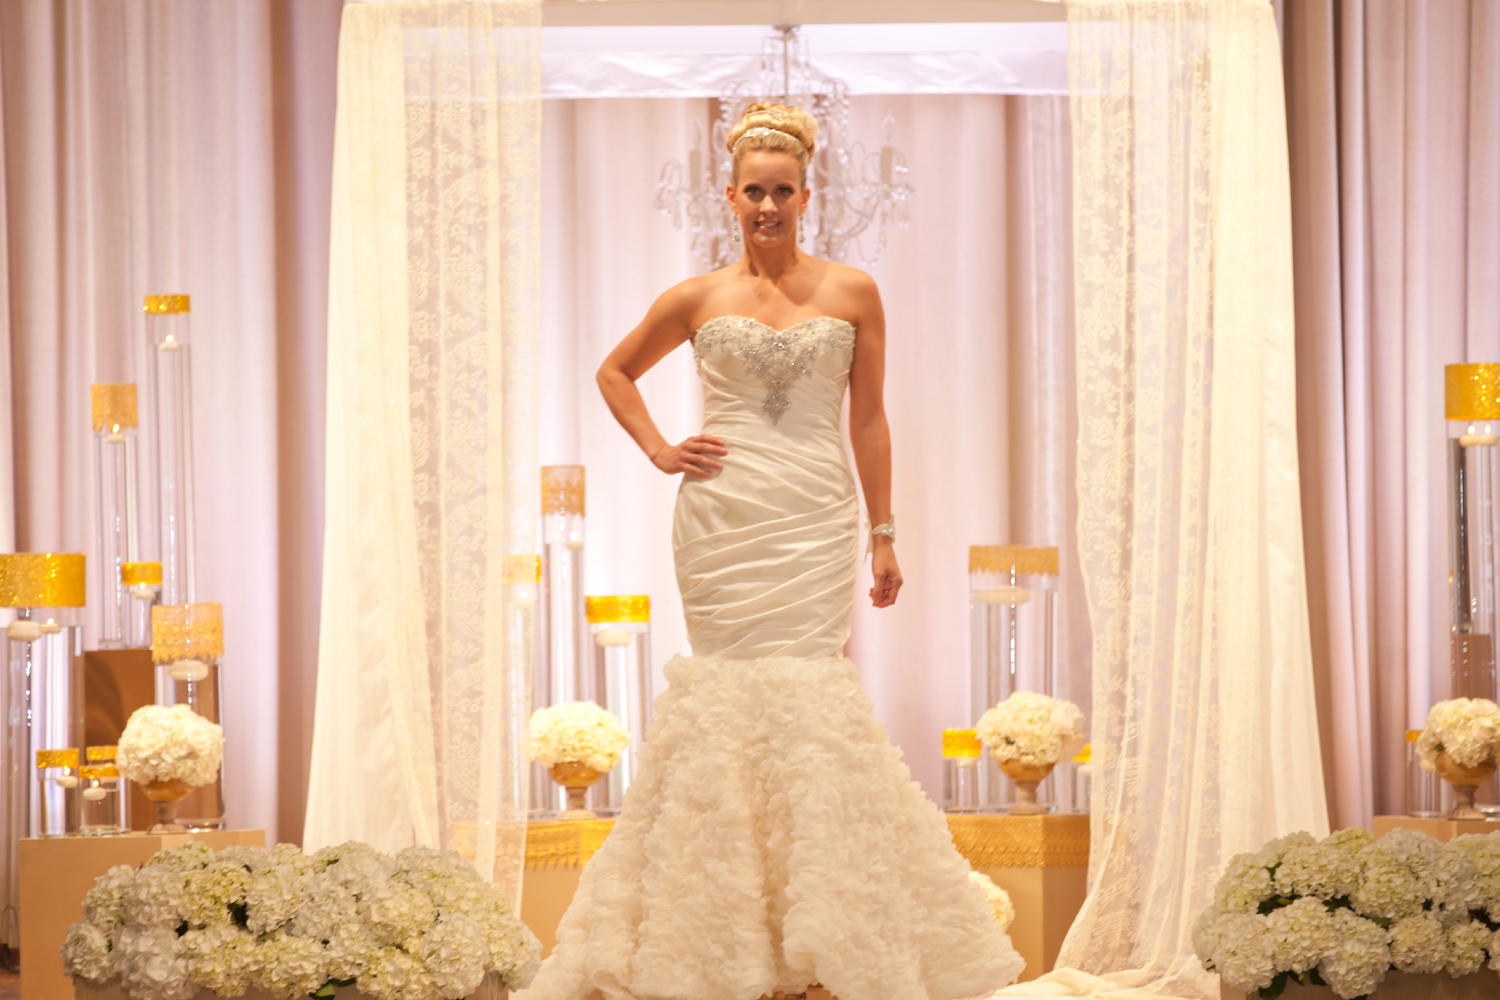 wedding fashion and gowns at The San Diego Wedding Party